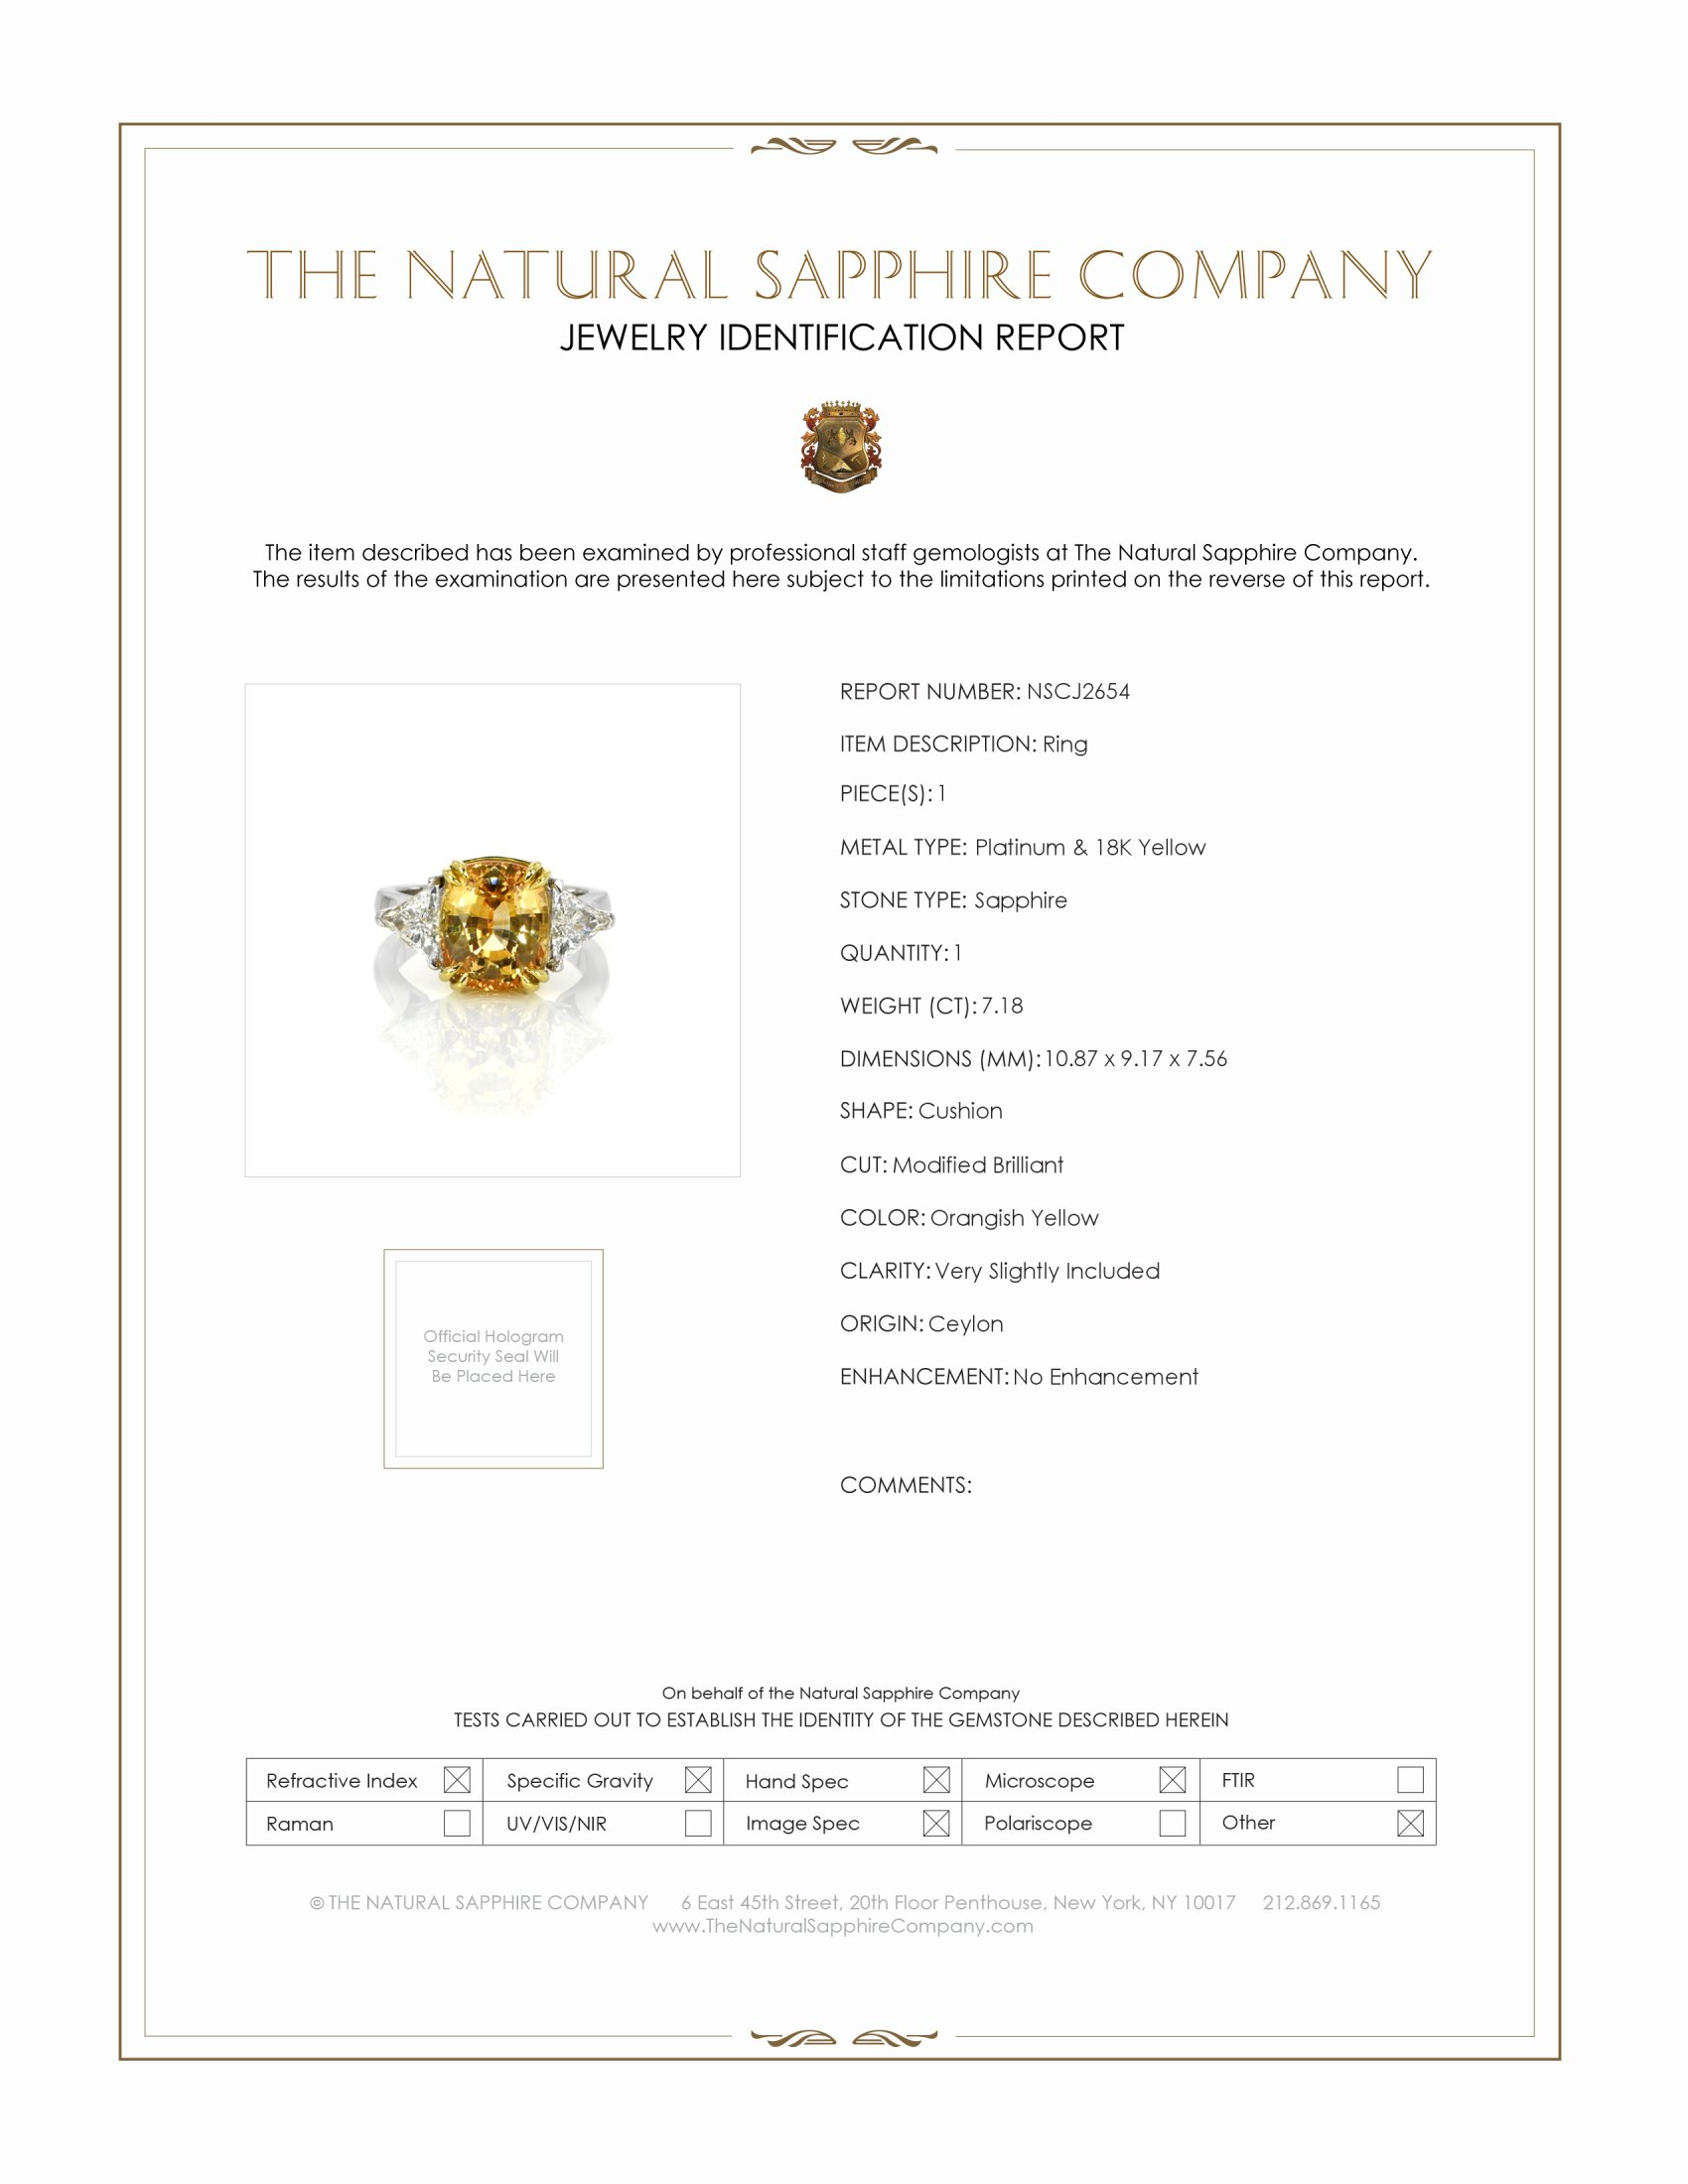 7.18ct Orangish Yellow Sapphire Ring Certification